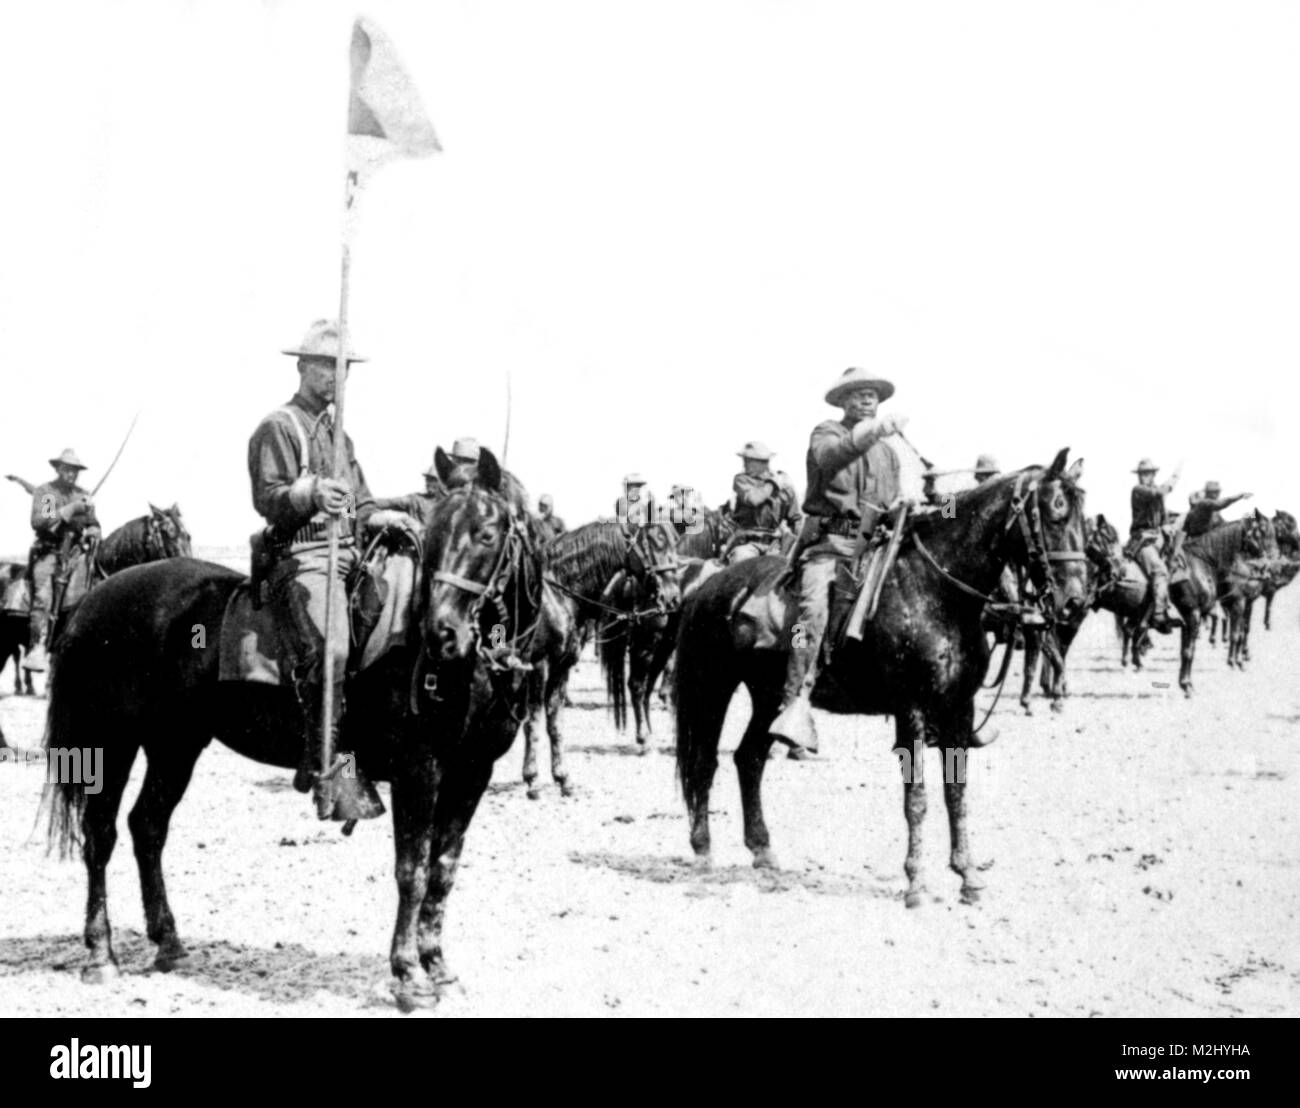 Spanish-American War, Buffalo Soldiers, 9th Cavalry, 1898 - Stock Image